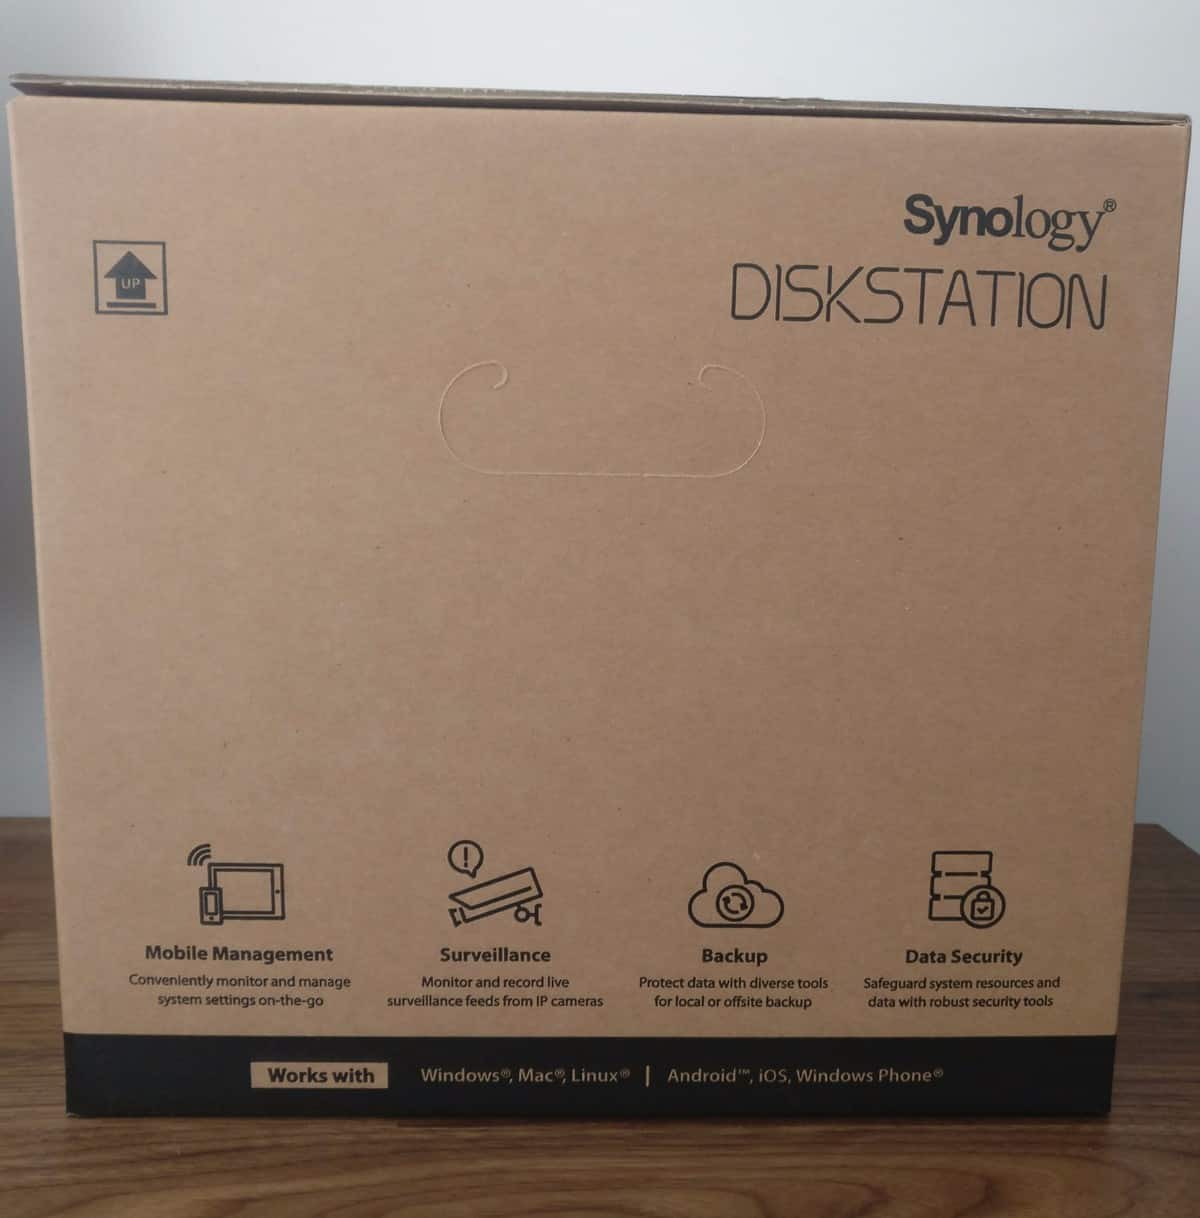 Synology DS1517+ 5 Bay NAS Review - The Streaming Blog